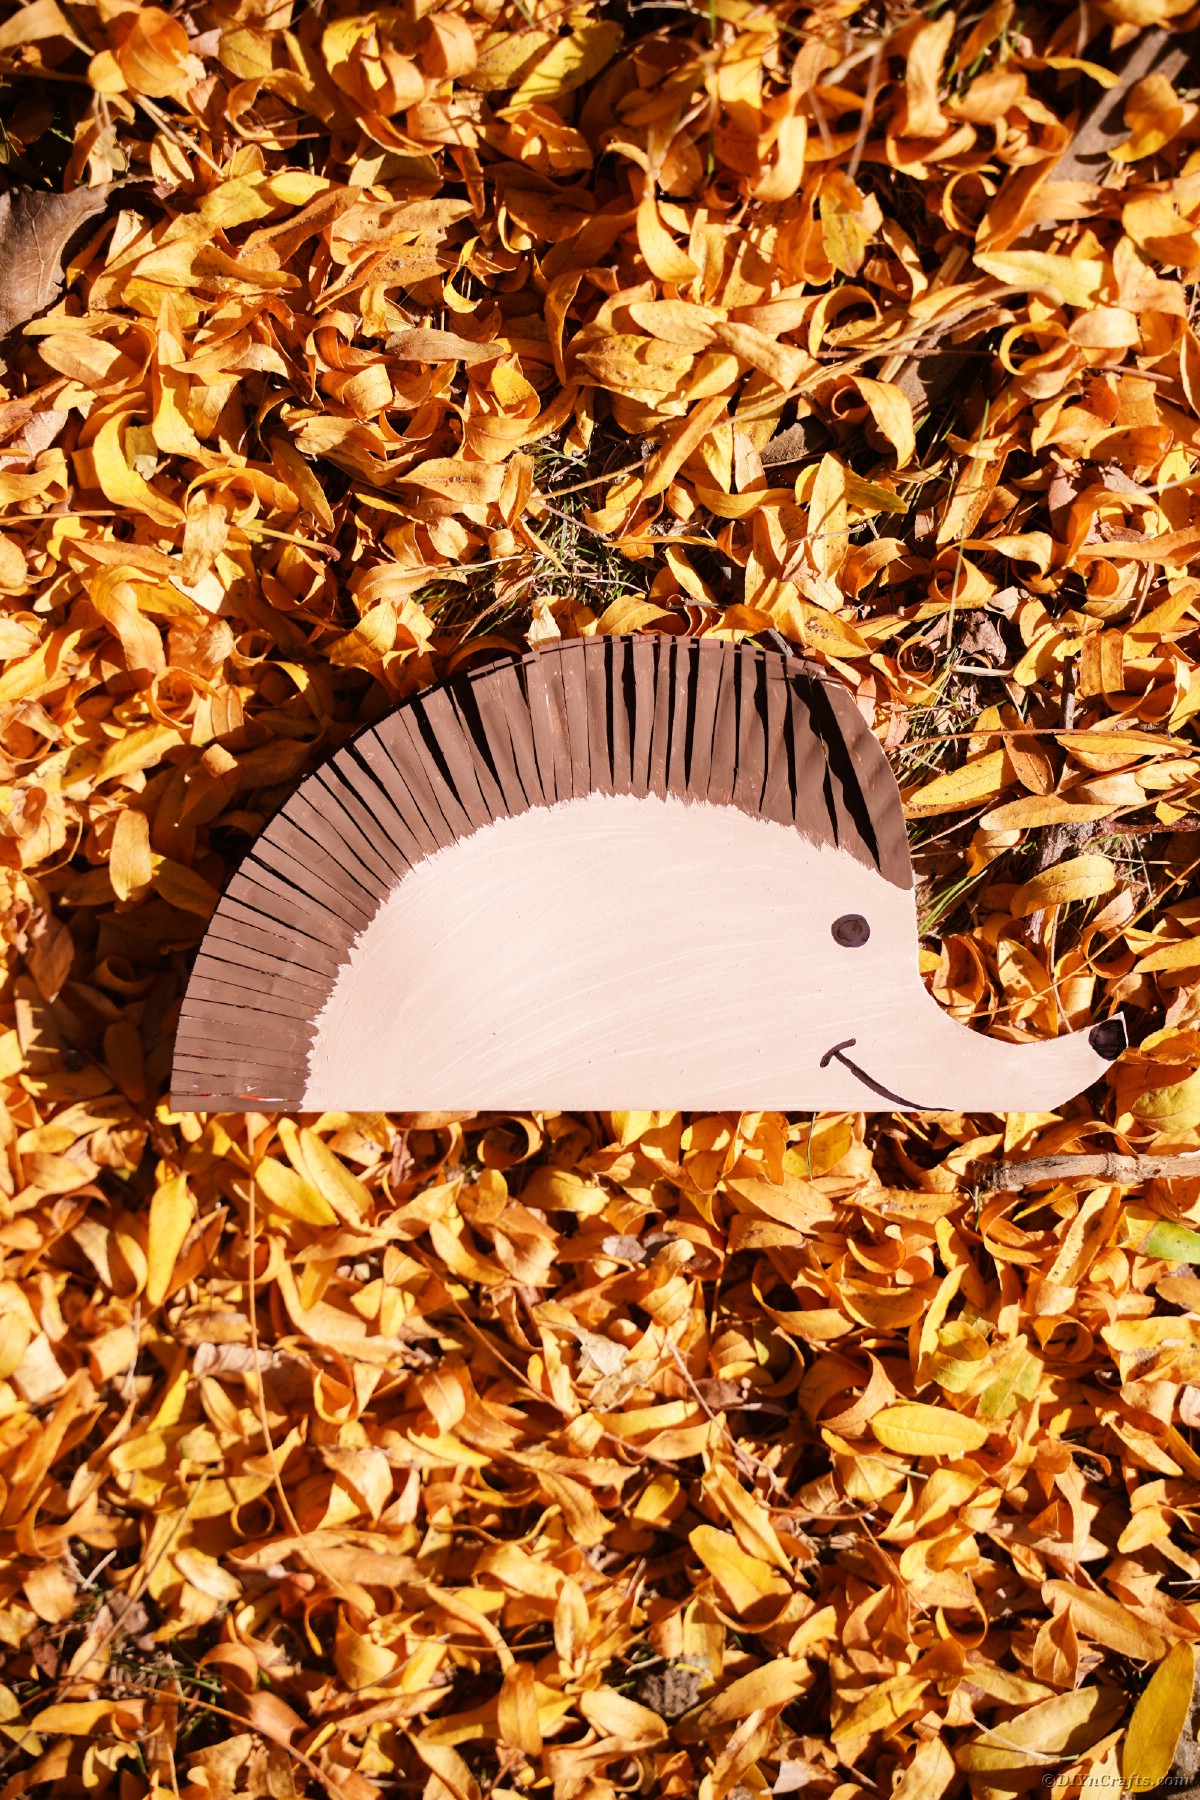 Yellow and gold leaves on ground topped by paper hedgehog decoration